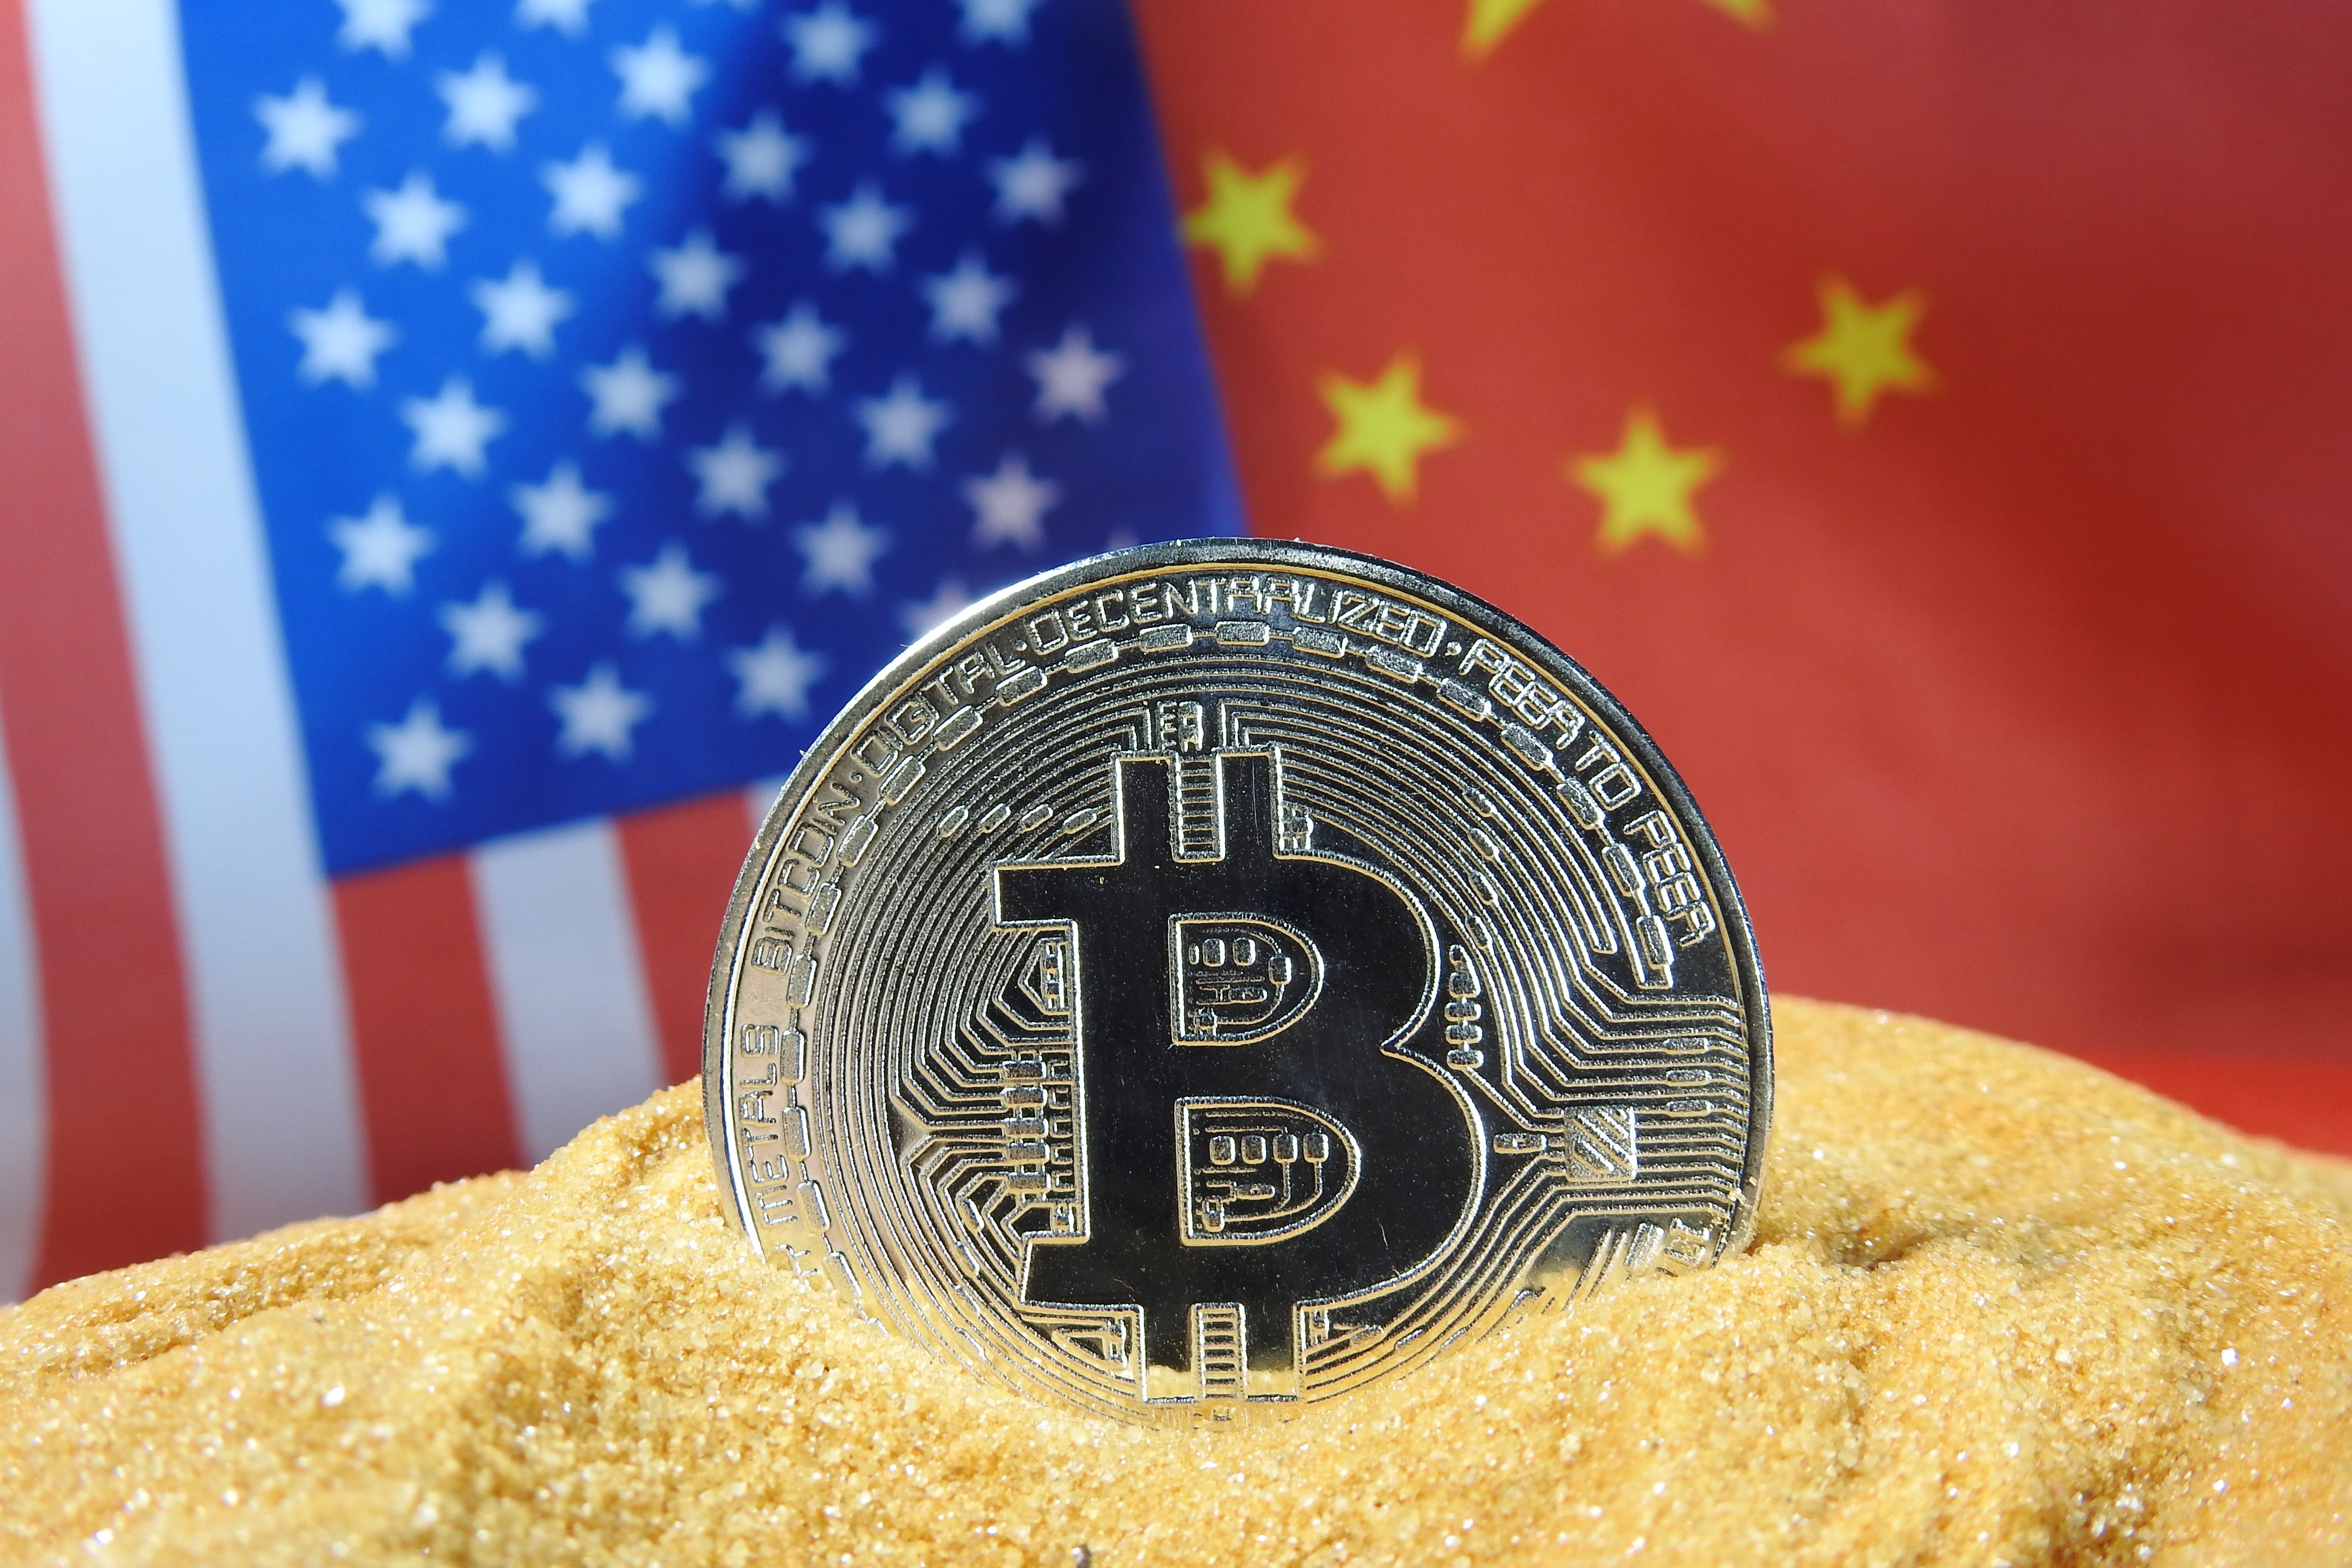 China Calls All Crypto Transactions Illegal, Bitcoin Drops $4k In Response